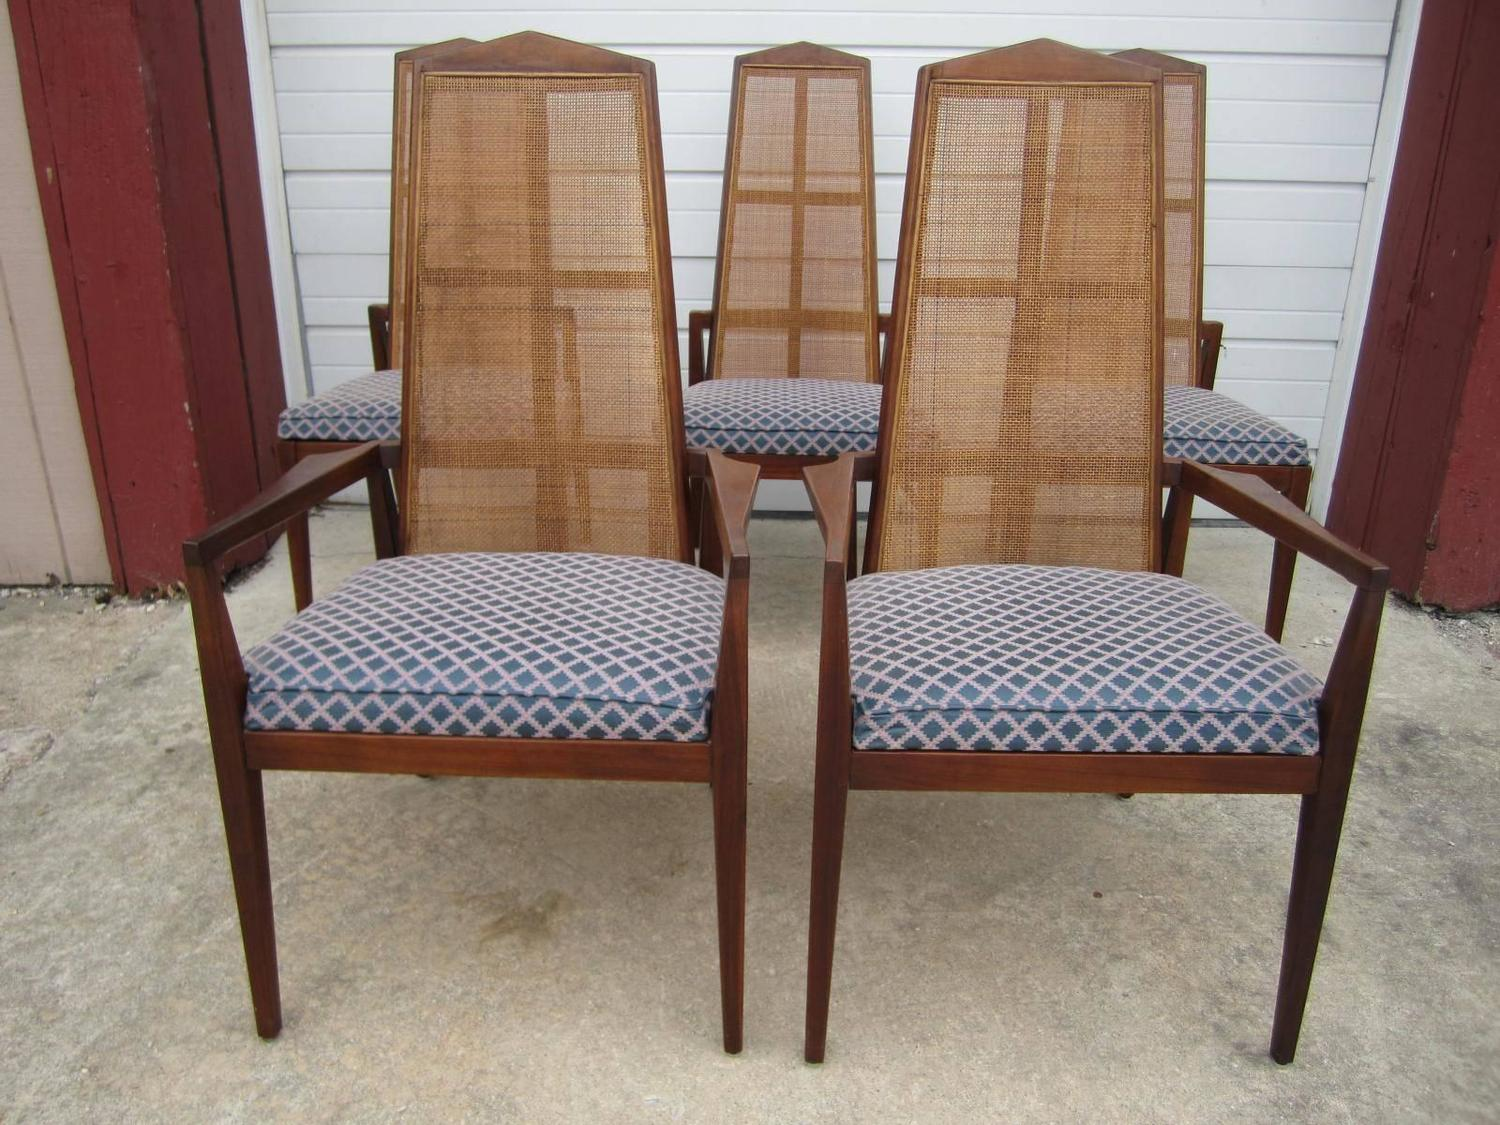 cane dining chairs for sale bedroom chair nz 5 walnut foster and mcdavid back mid